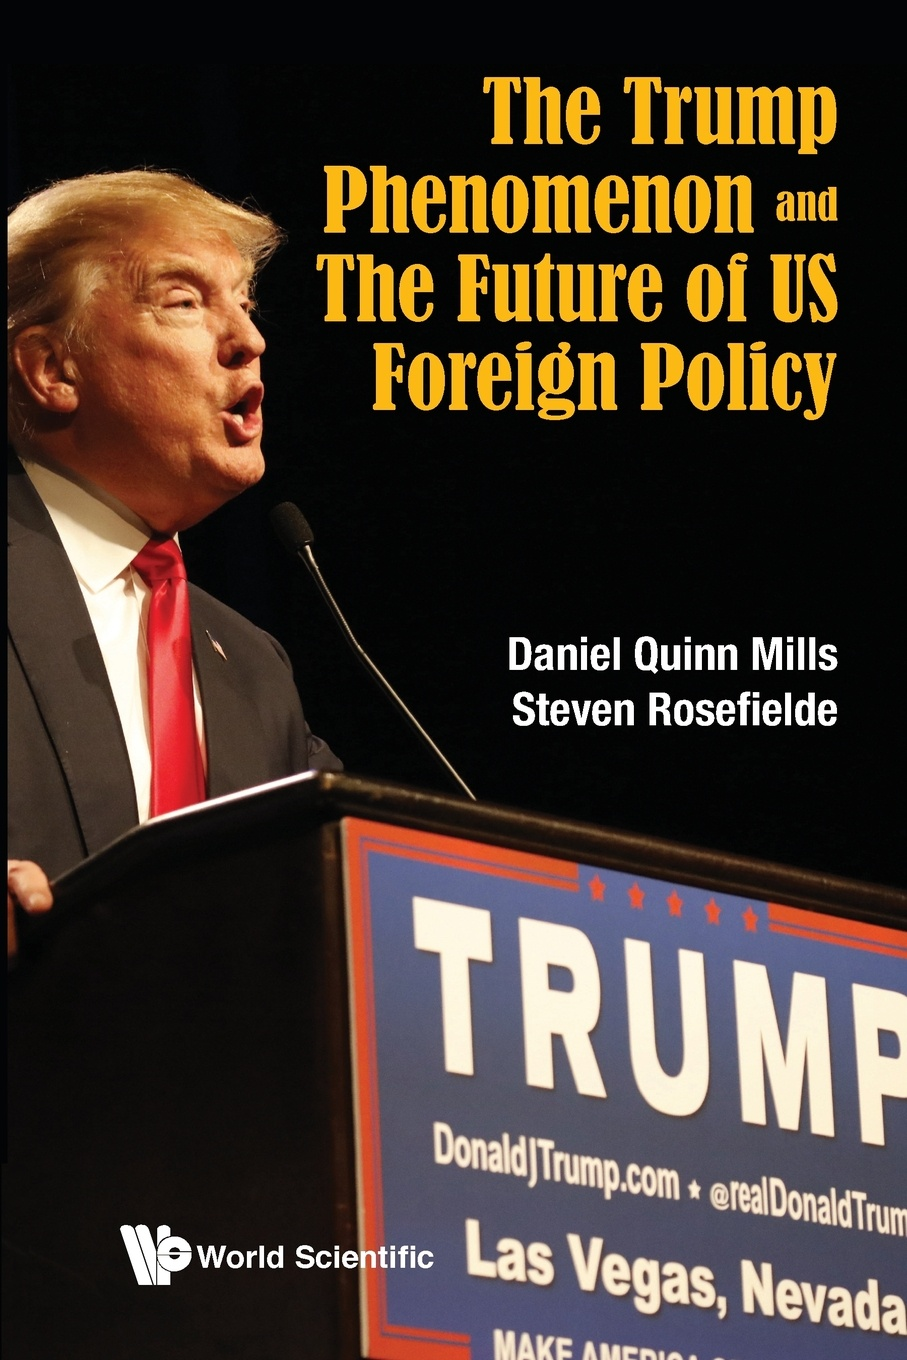 Daniel Quinn Mills, Steven Rosefielde TRUMP PHENOMENON AND THE FUTURE OF US FOREIGN POLICY, THE us and them